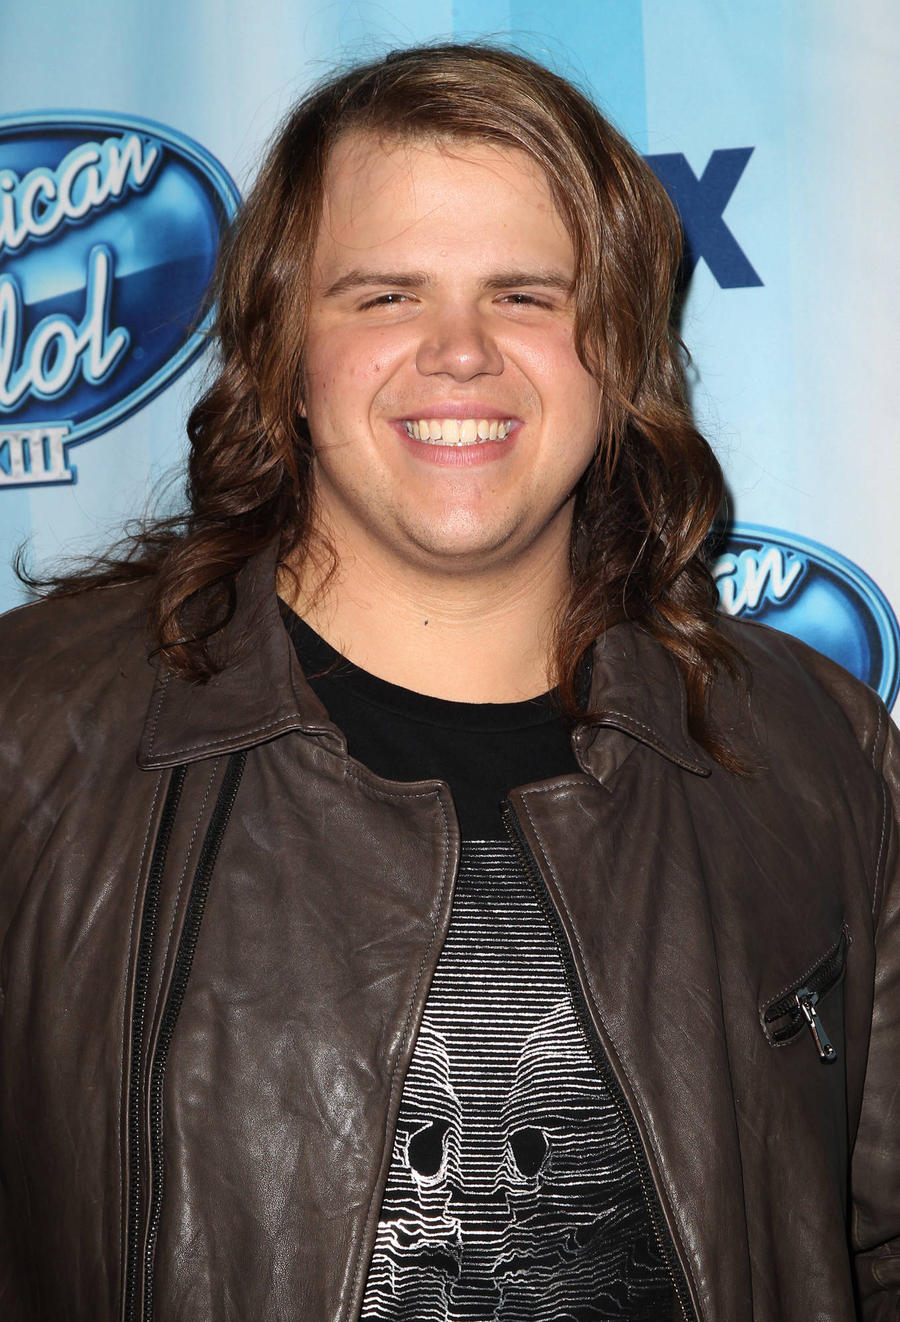 American Idol Winner Caleb Johnson Turns To Fans For Help